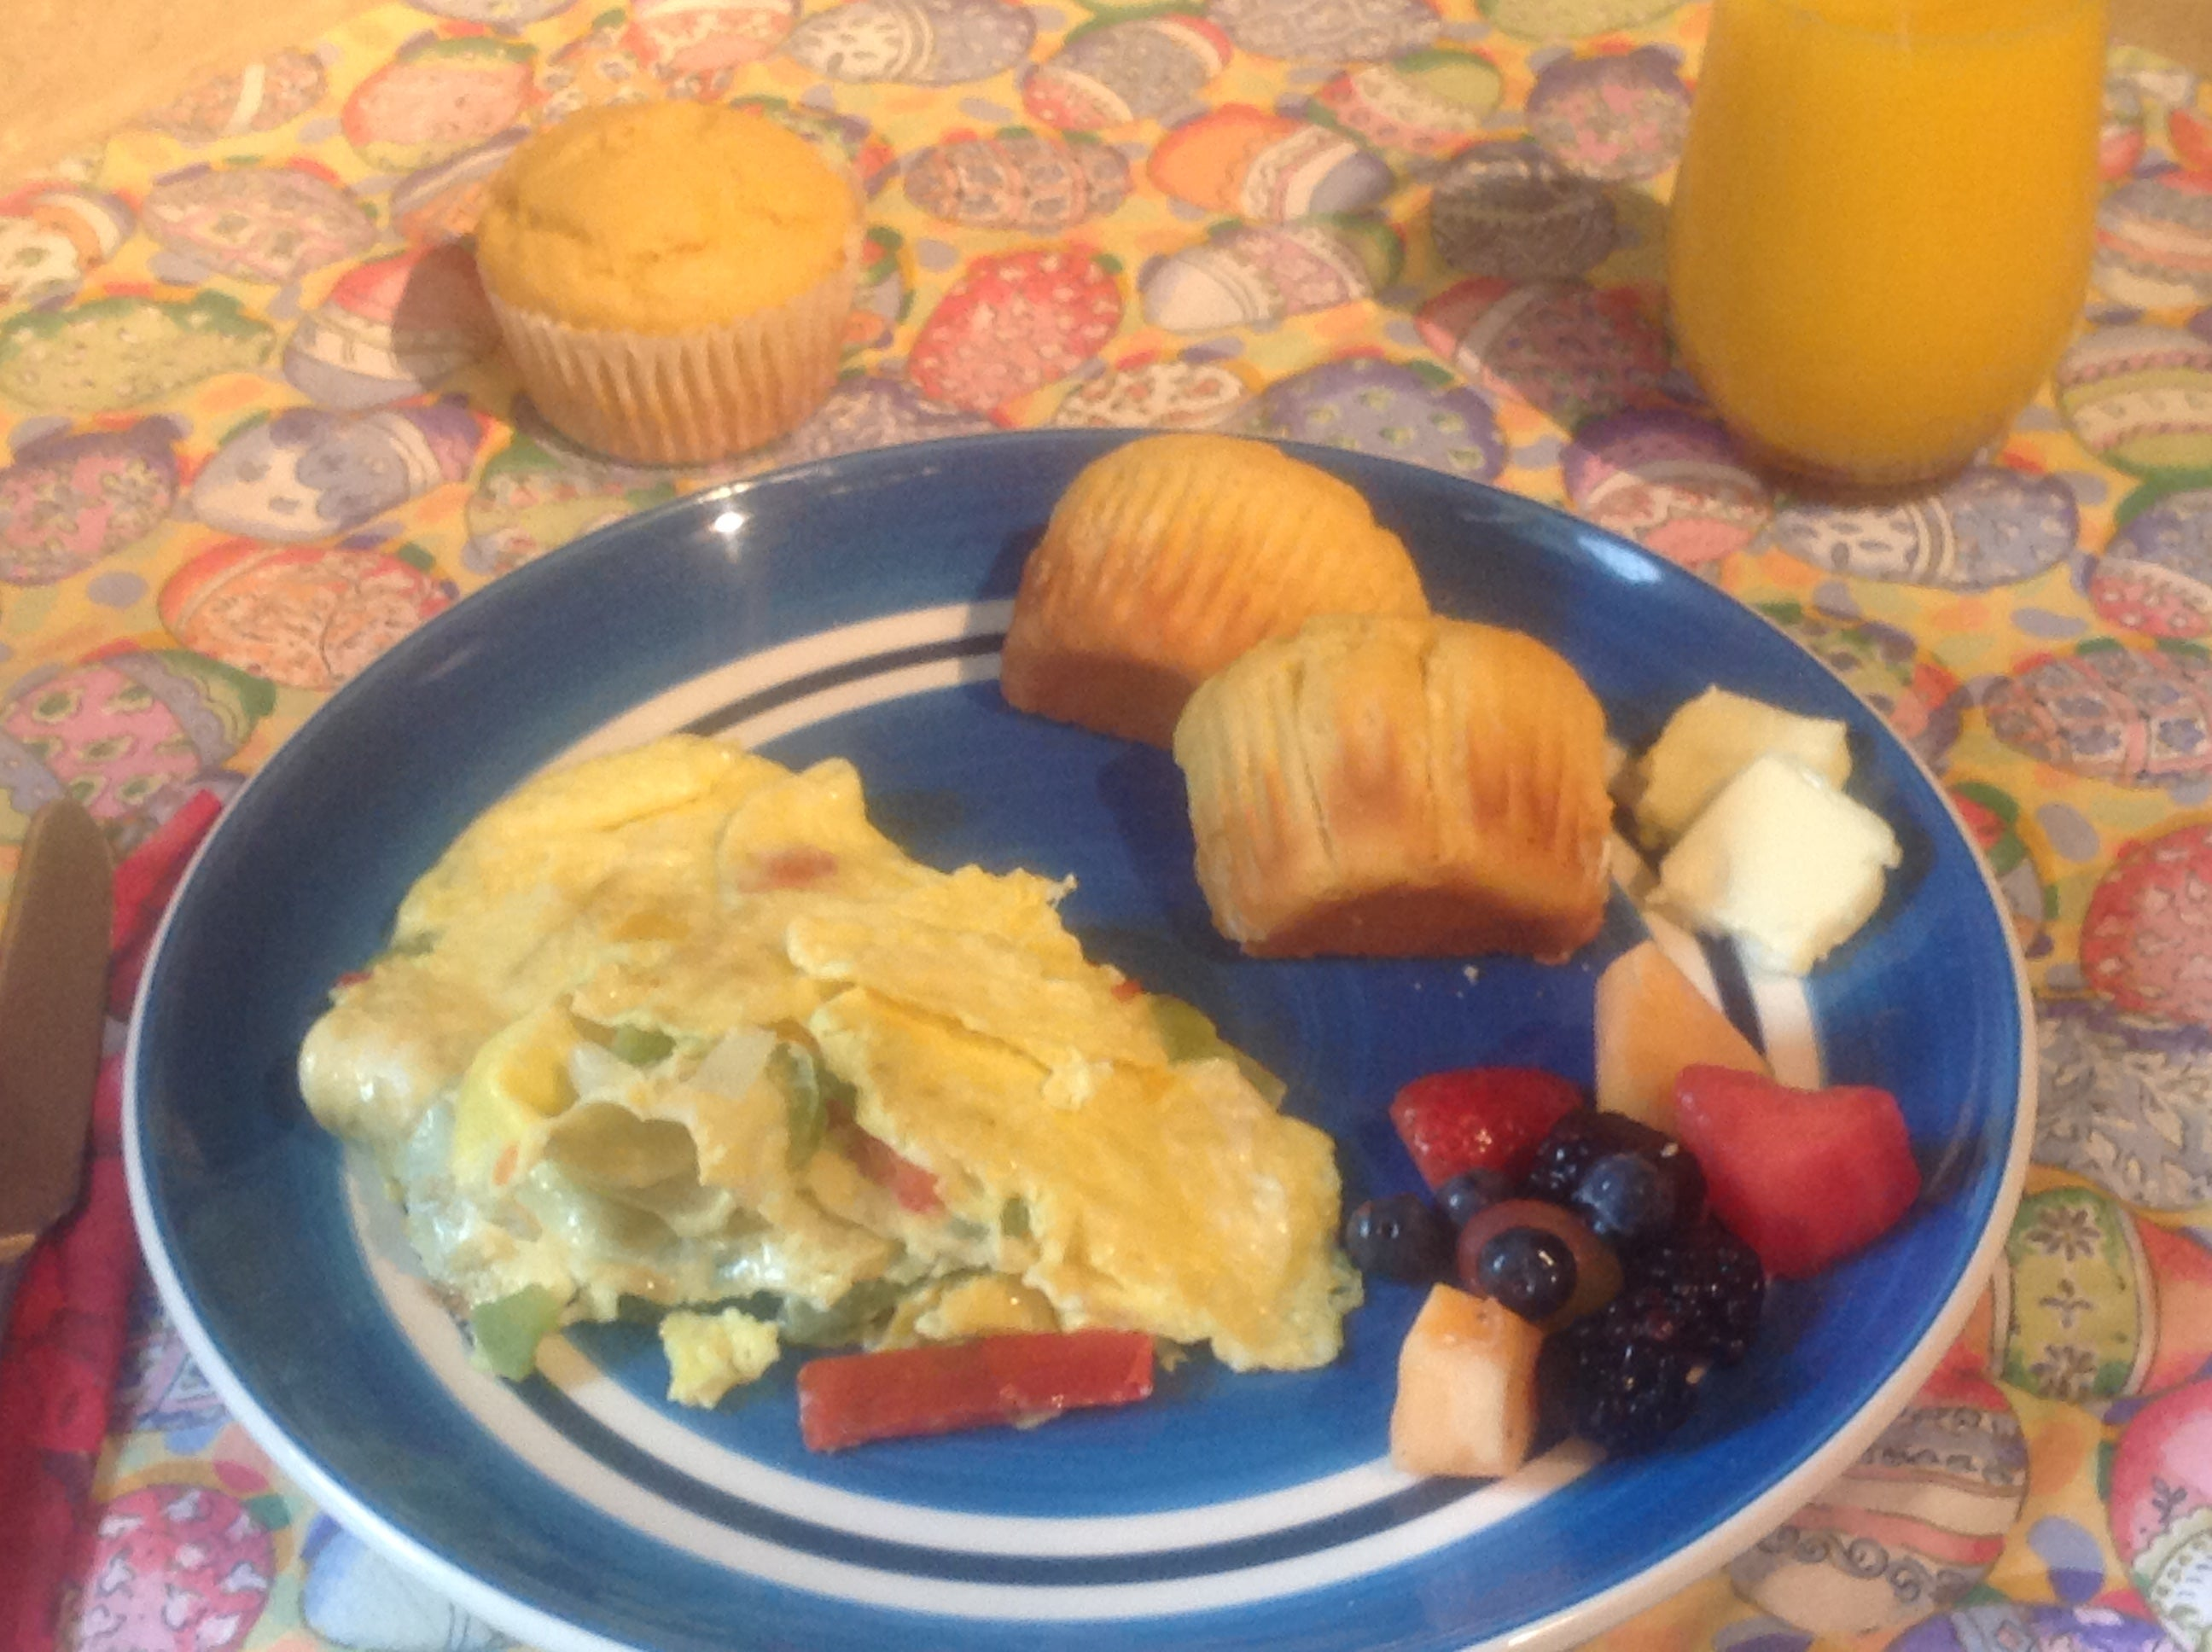 Omelette with Orange Citrus Corn Muffins and Berries